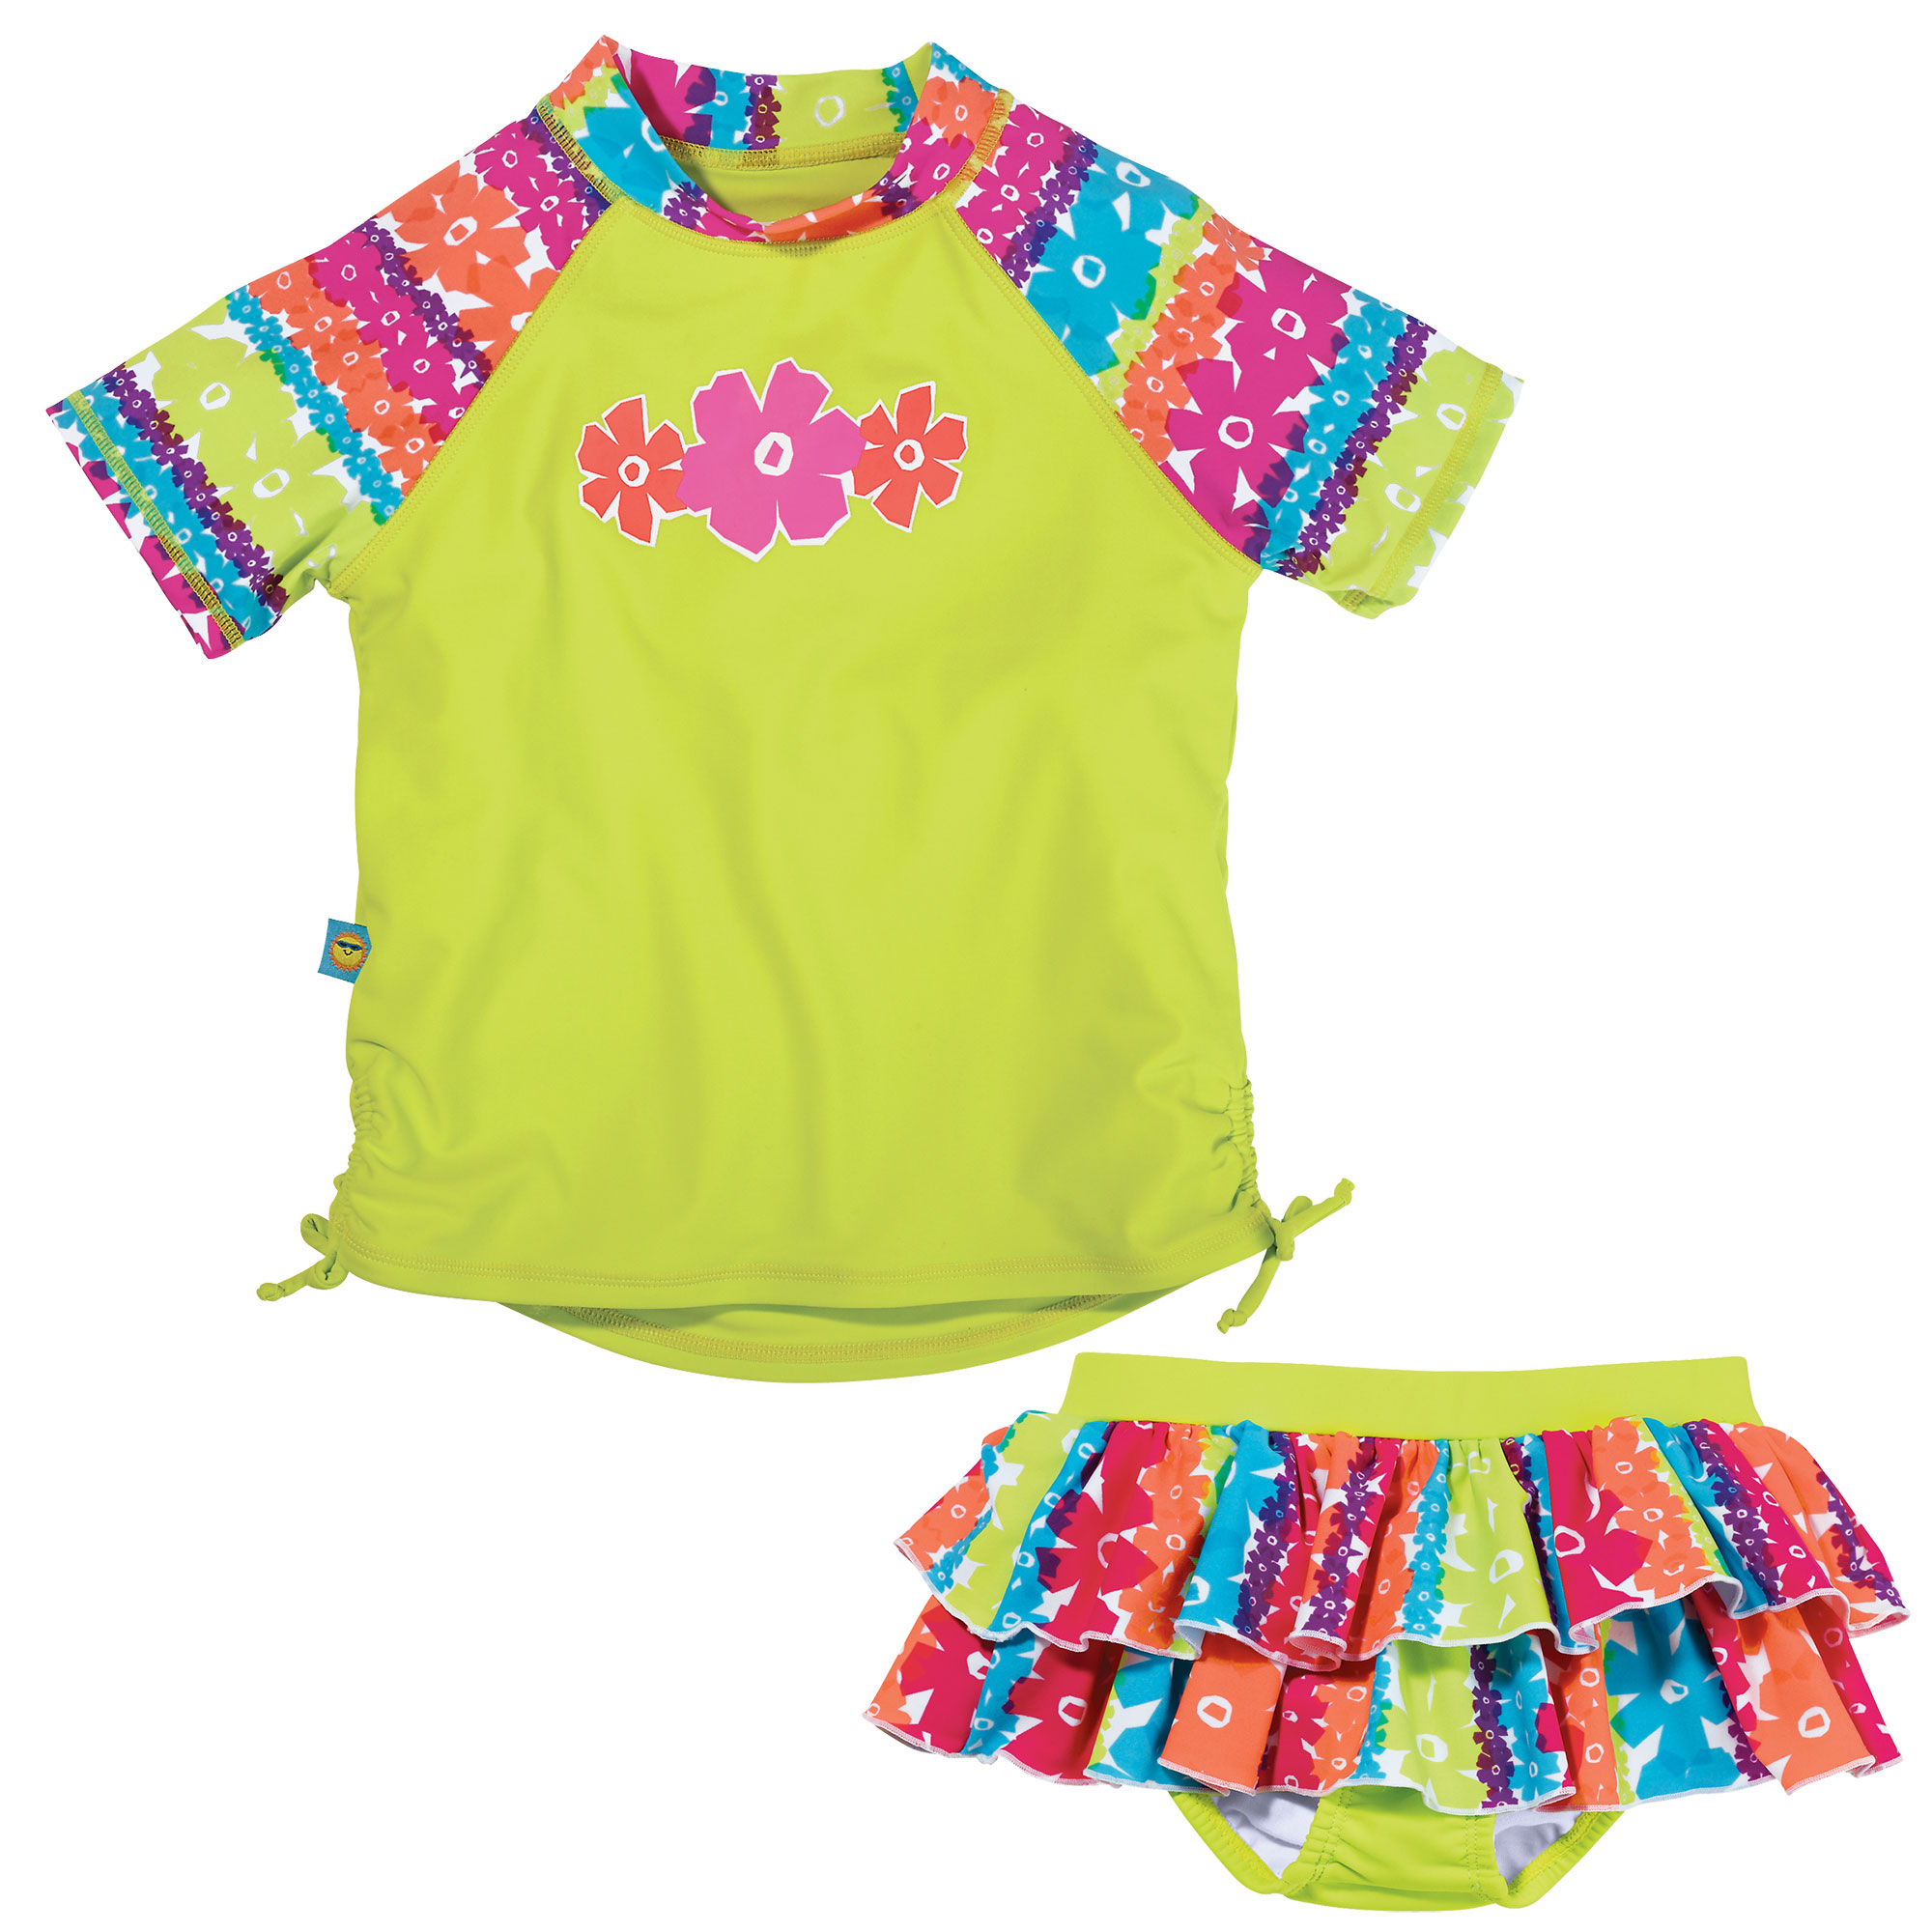 Sun Smarties Baby Girl Swim Diaper Skirt and Rashguard - Lime Green and Floral Design - 2 Piece Swimsuit